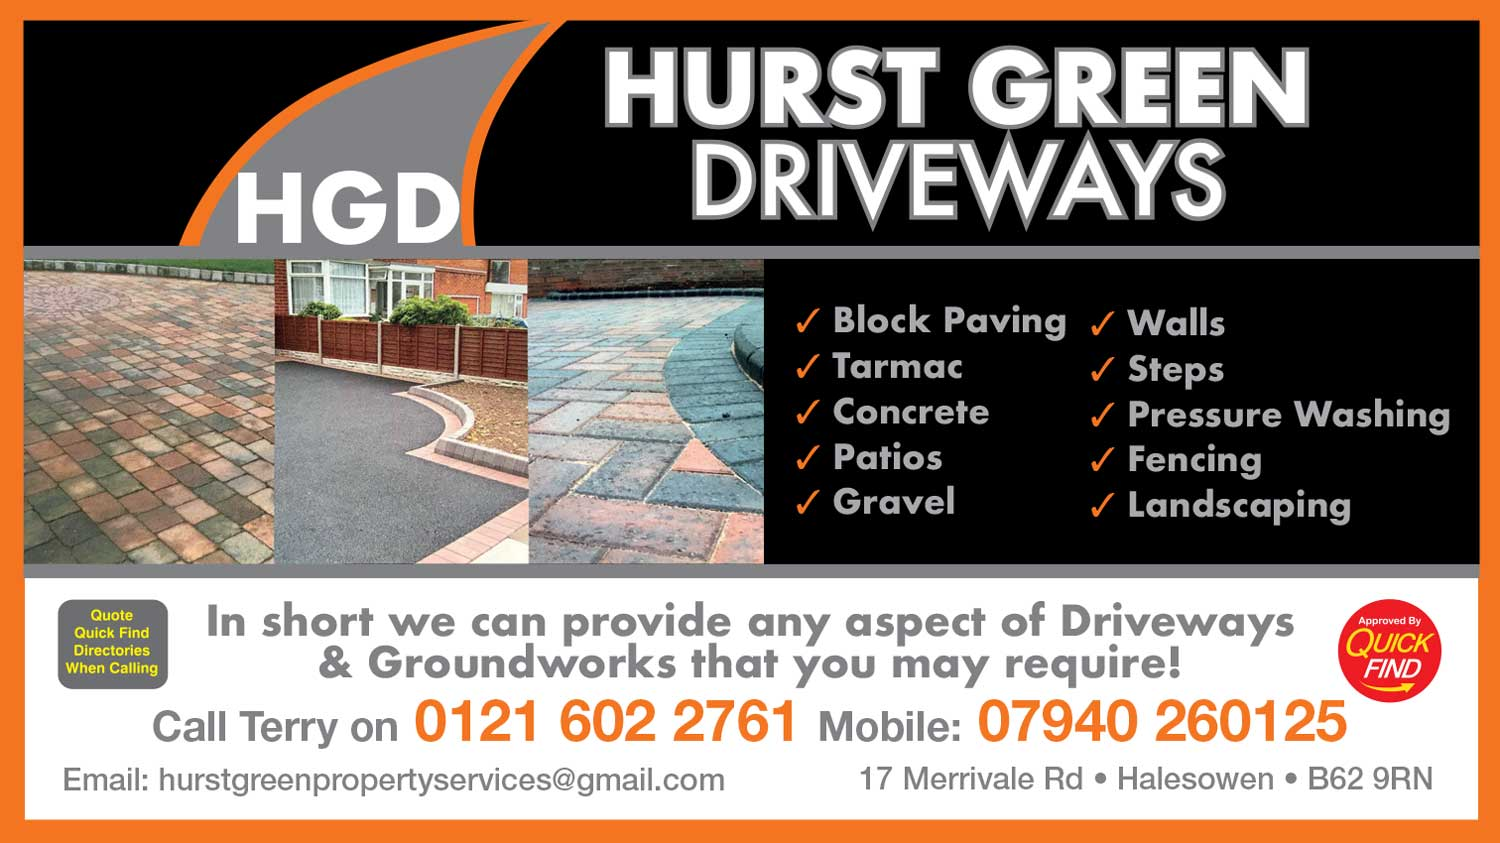 Hurst Green Driveways